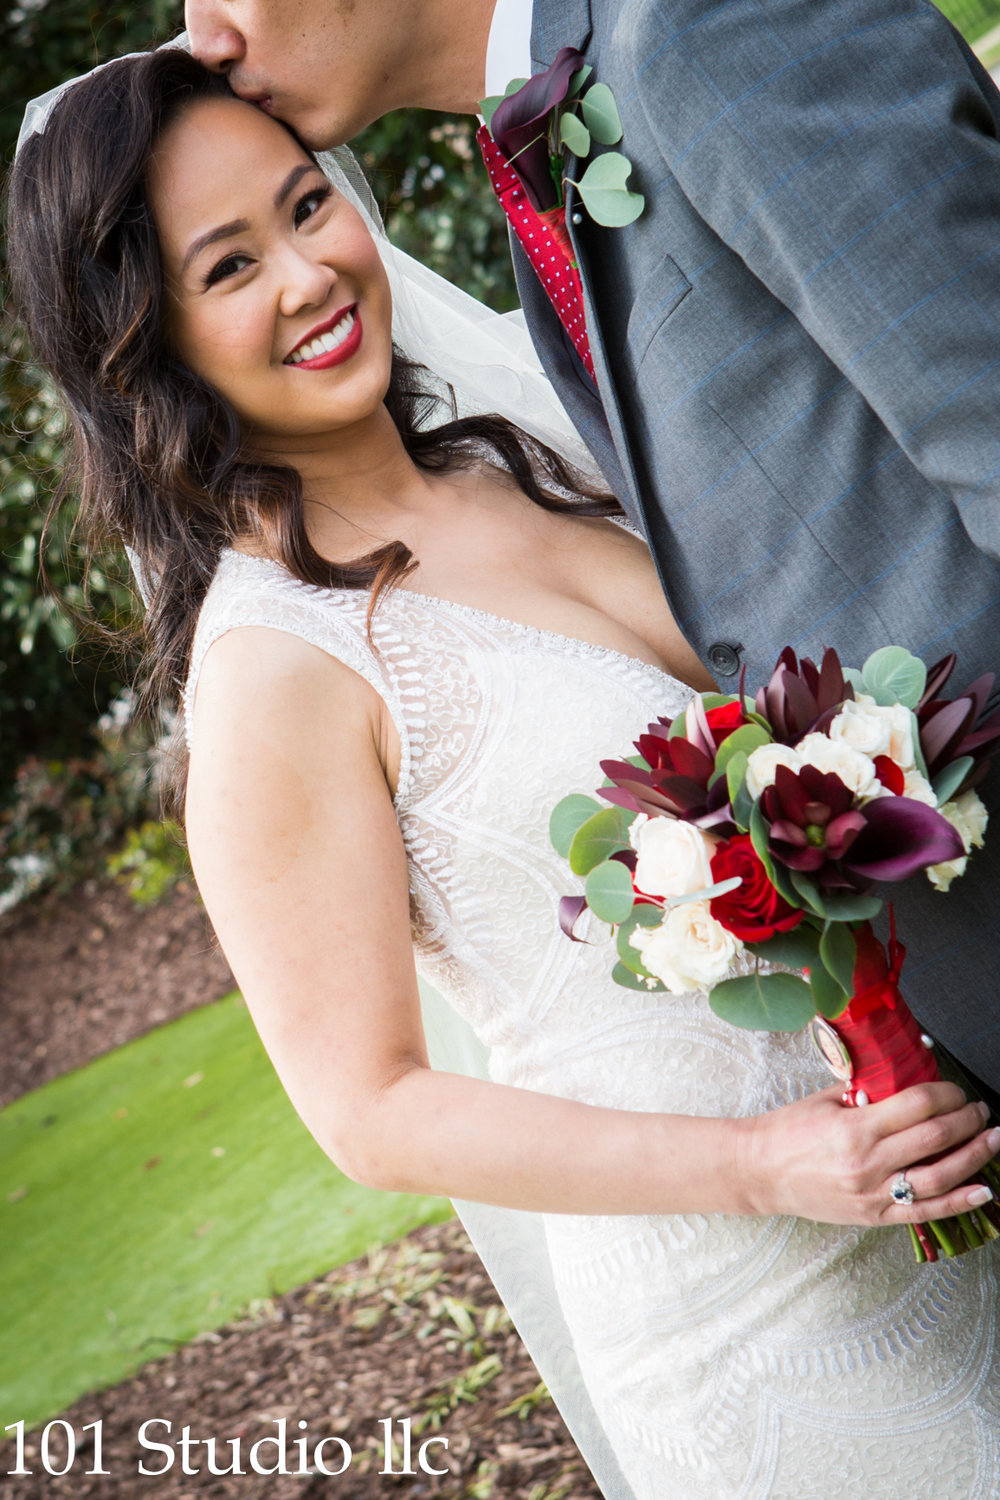 101 studio llc - Raleigh wedding photographer-14.jpg